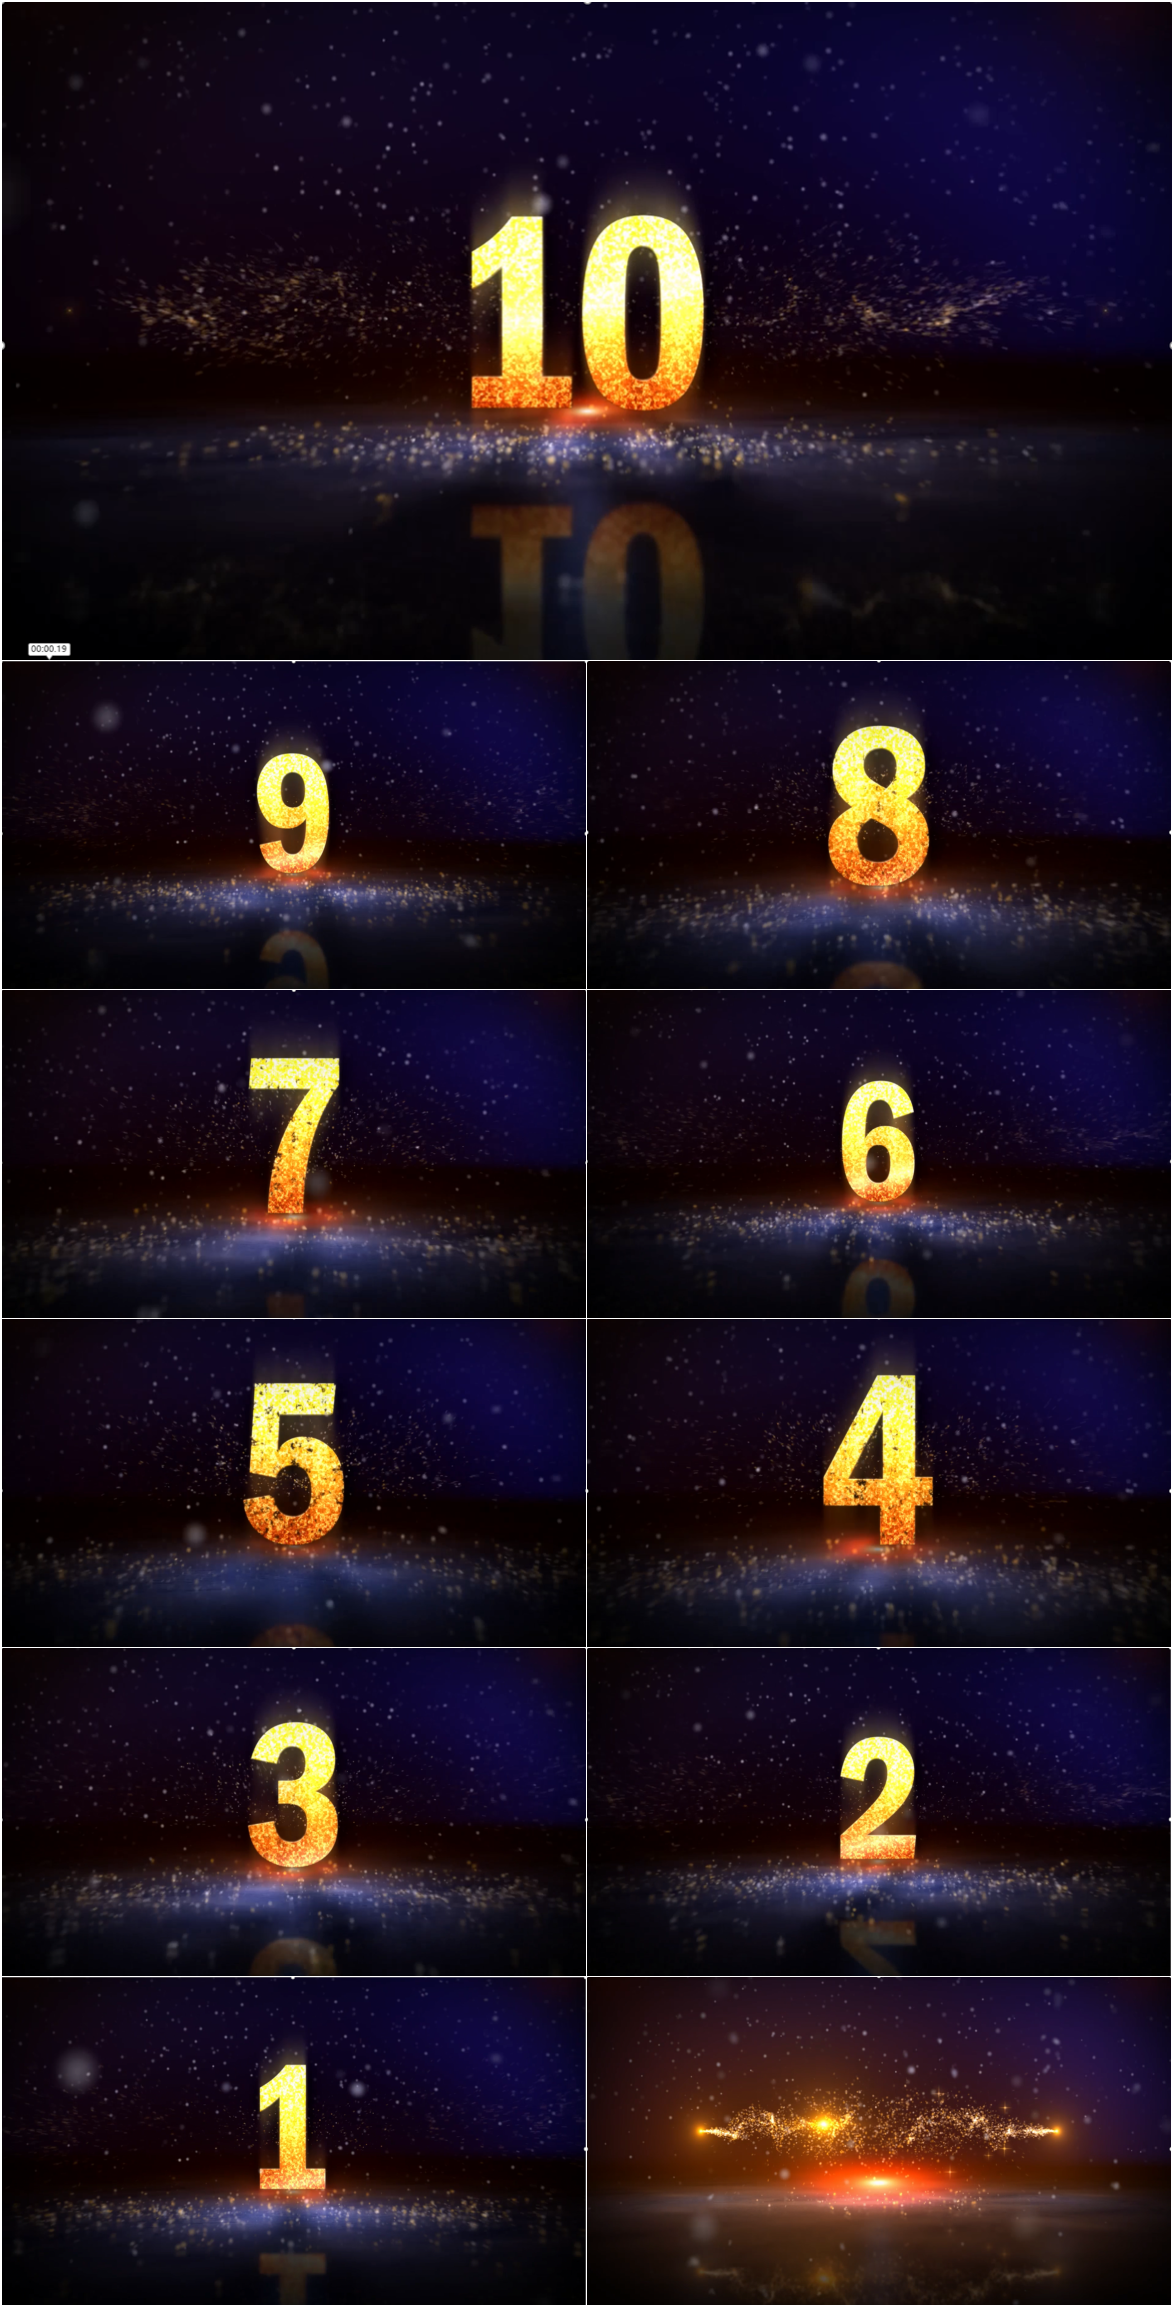 Awesome 10 second countdown video ppt mode of shock particle opening ...